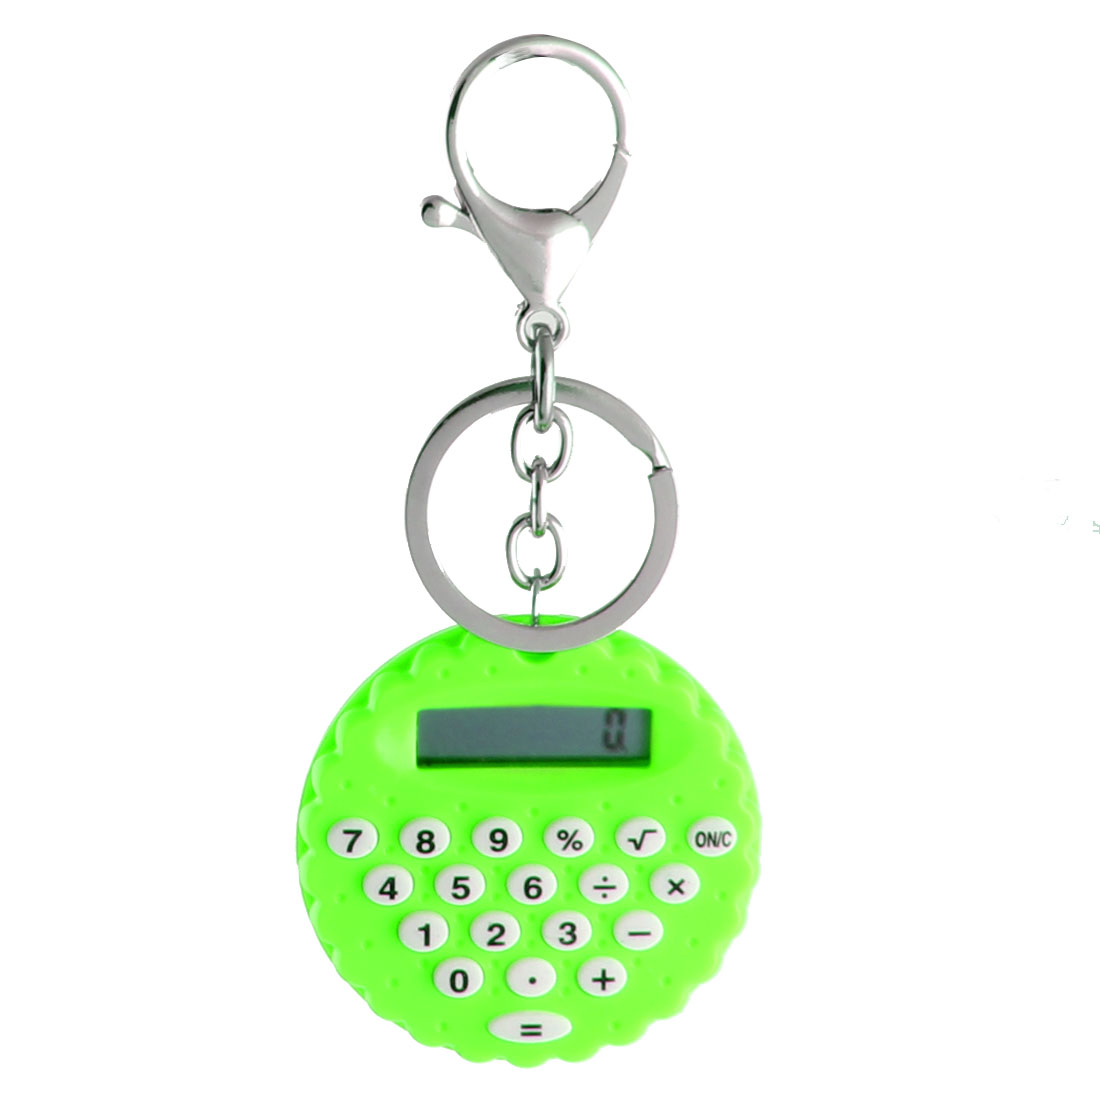 Plastic Biscuit Shaped Shell LCD Display 8-digit Pocket Portable Calculator Green w Key Chain